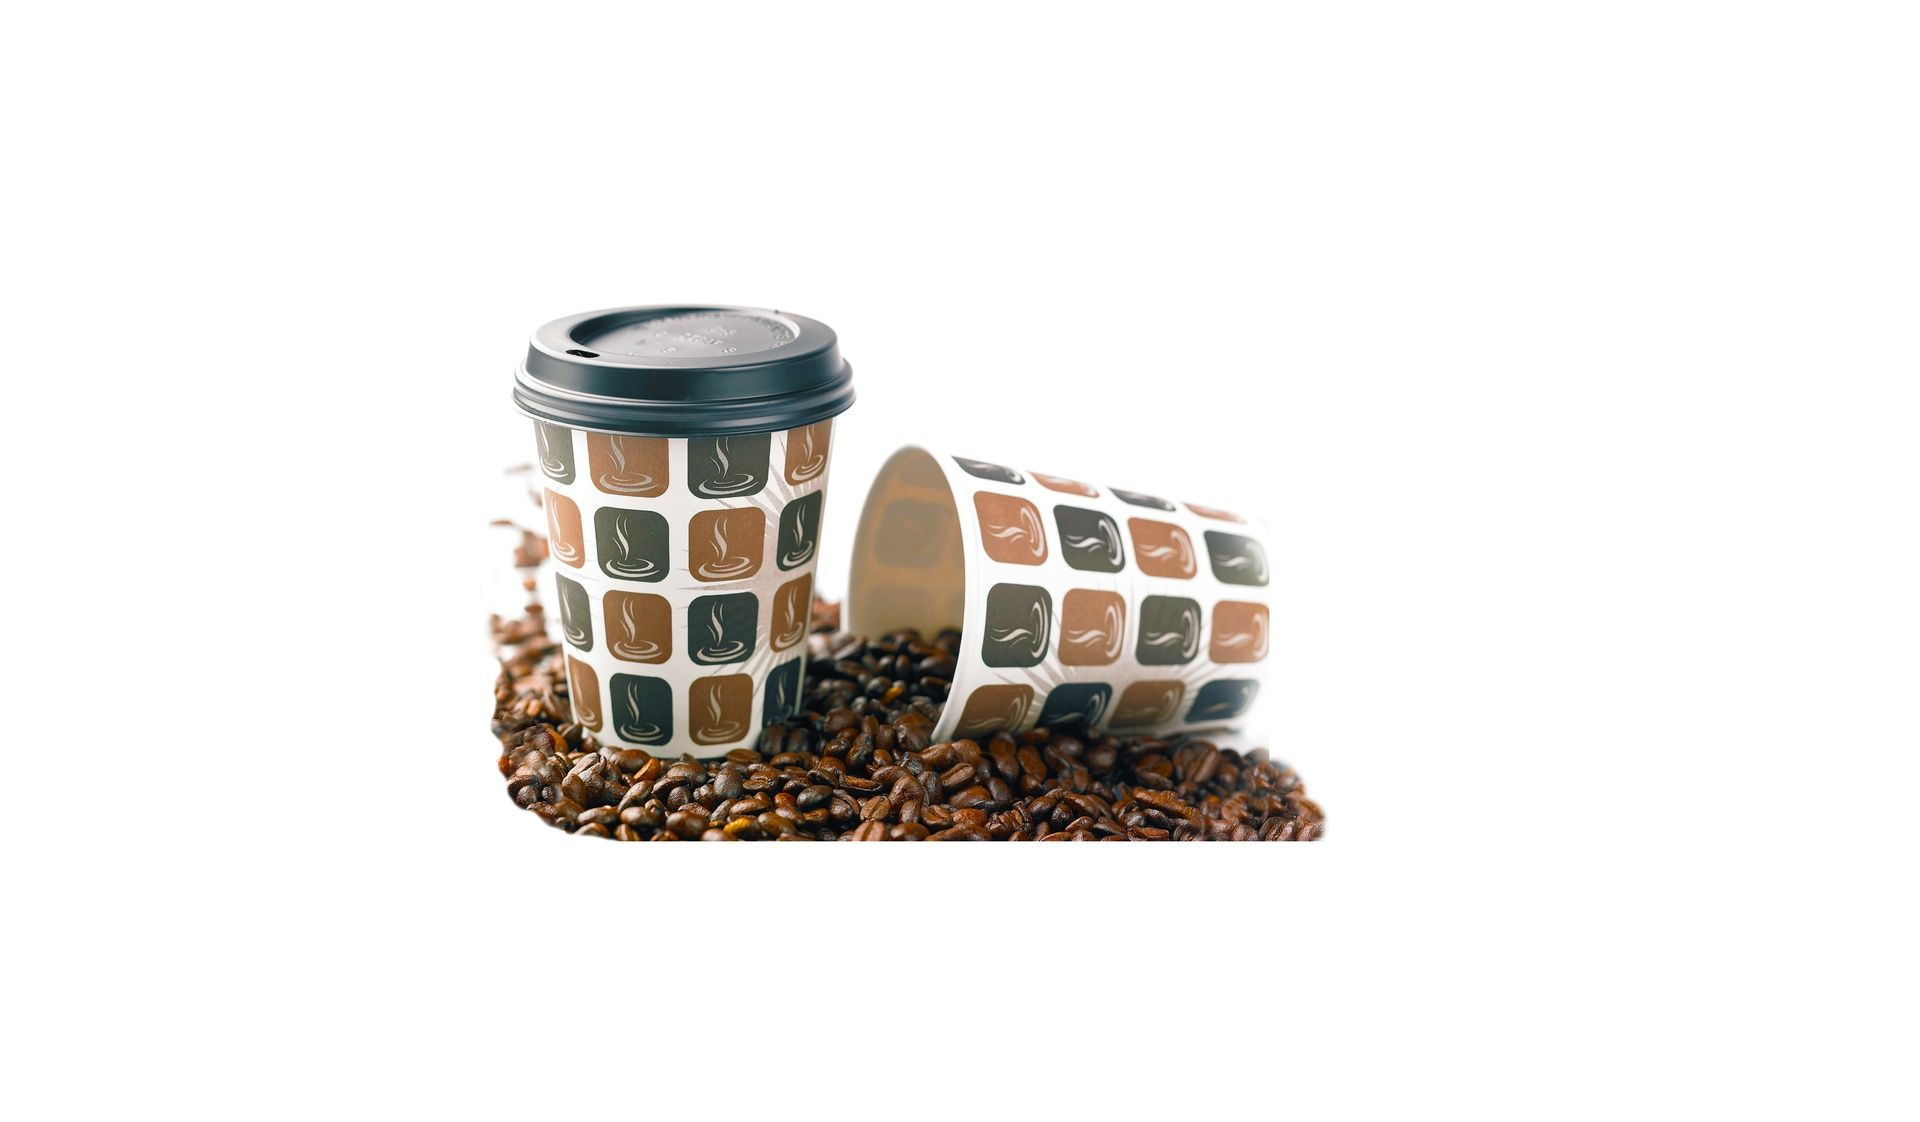 Patterned paper coffee cups resting on full-bean coffee beans